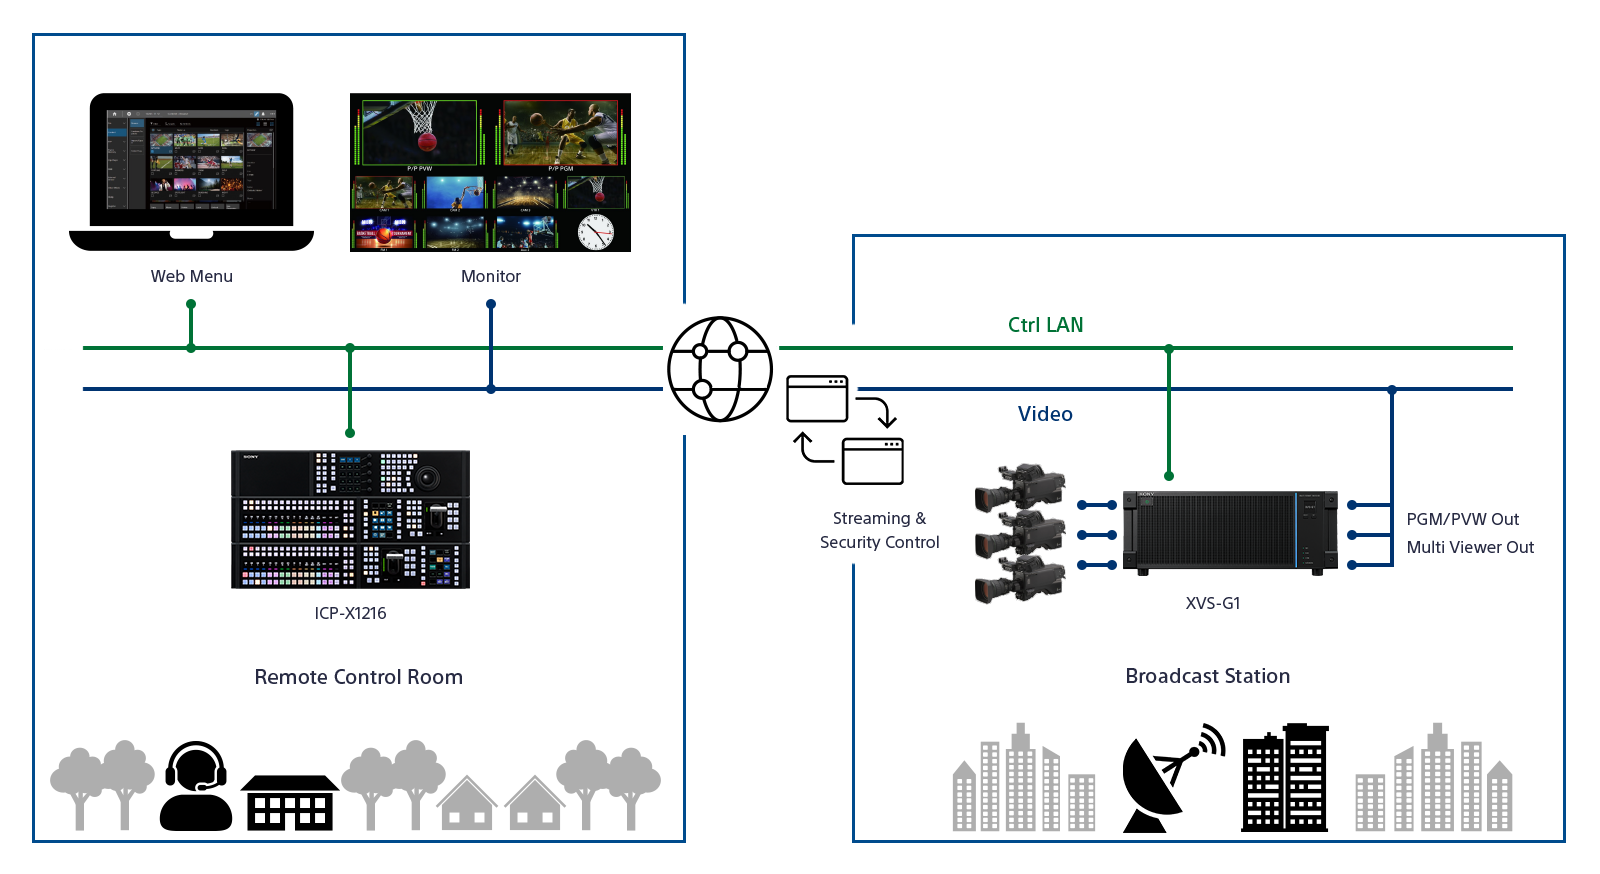 Diagram showing the work flow for a remote production set up